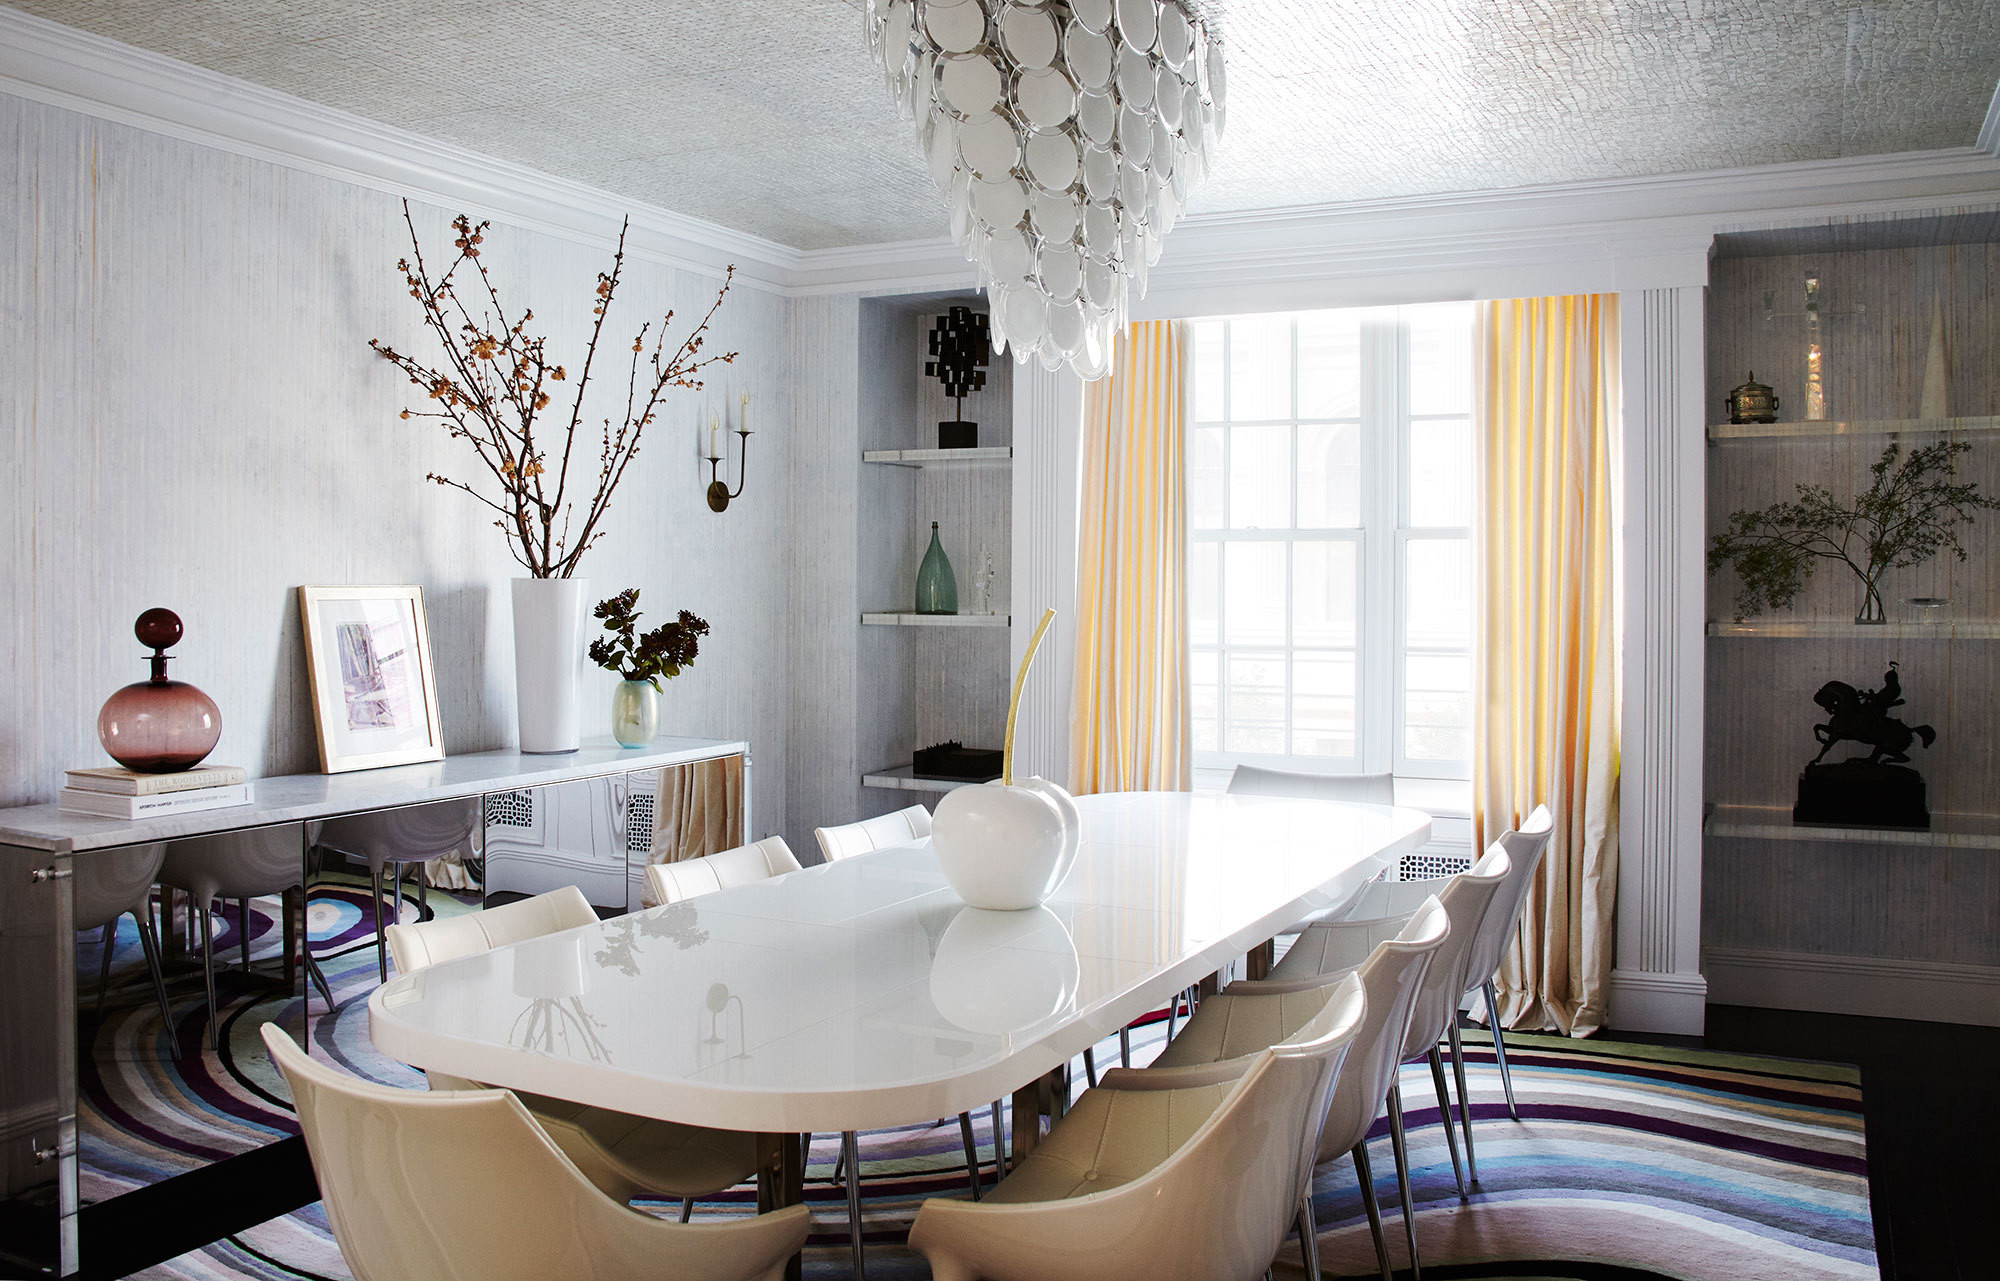 The formal dining room in a New York City apartment designed by Daun Curry.